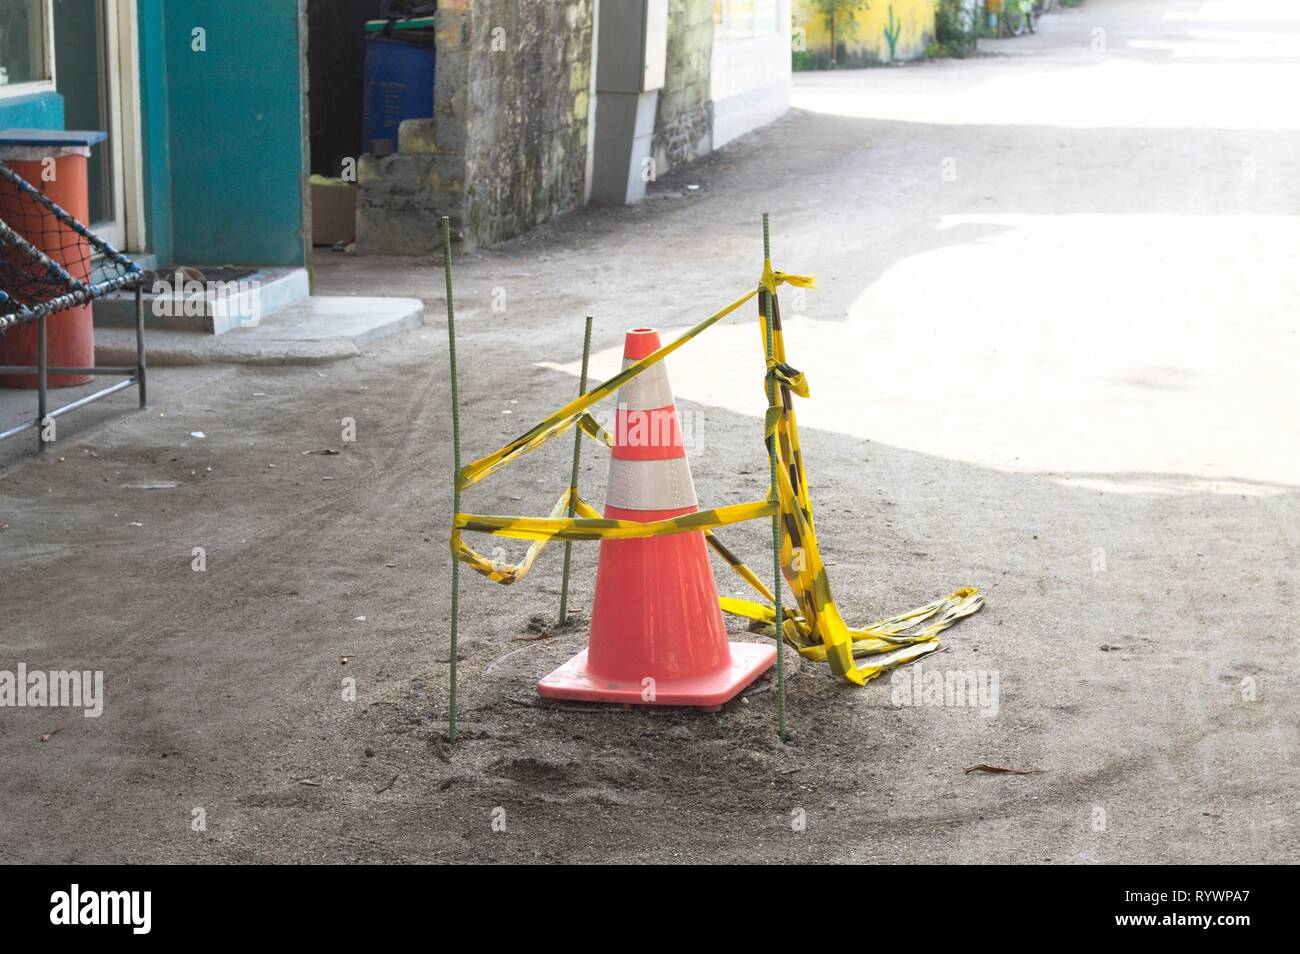 Work in progress - Isolated street cone in the street with a black and yellow net (Ari Atoll, Maldives) - Stock Image